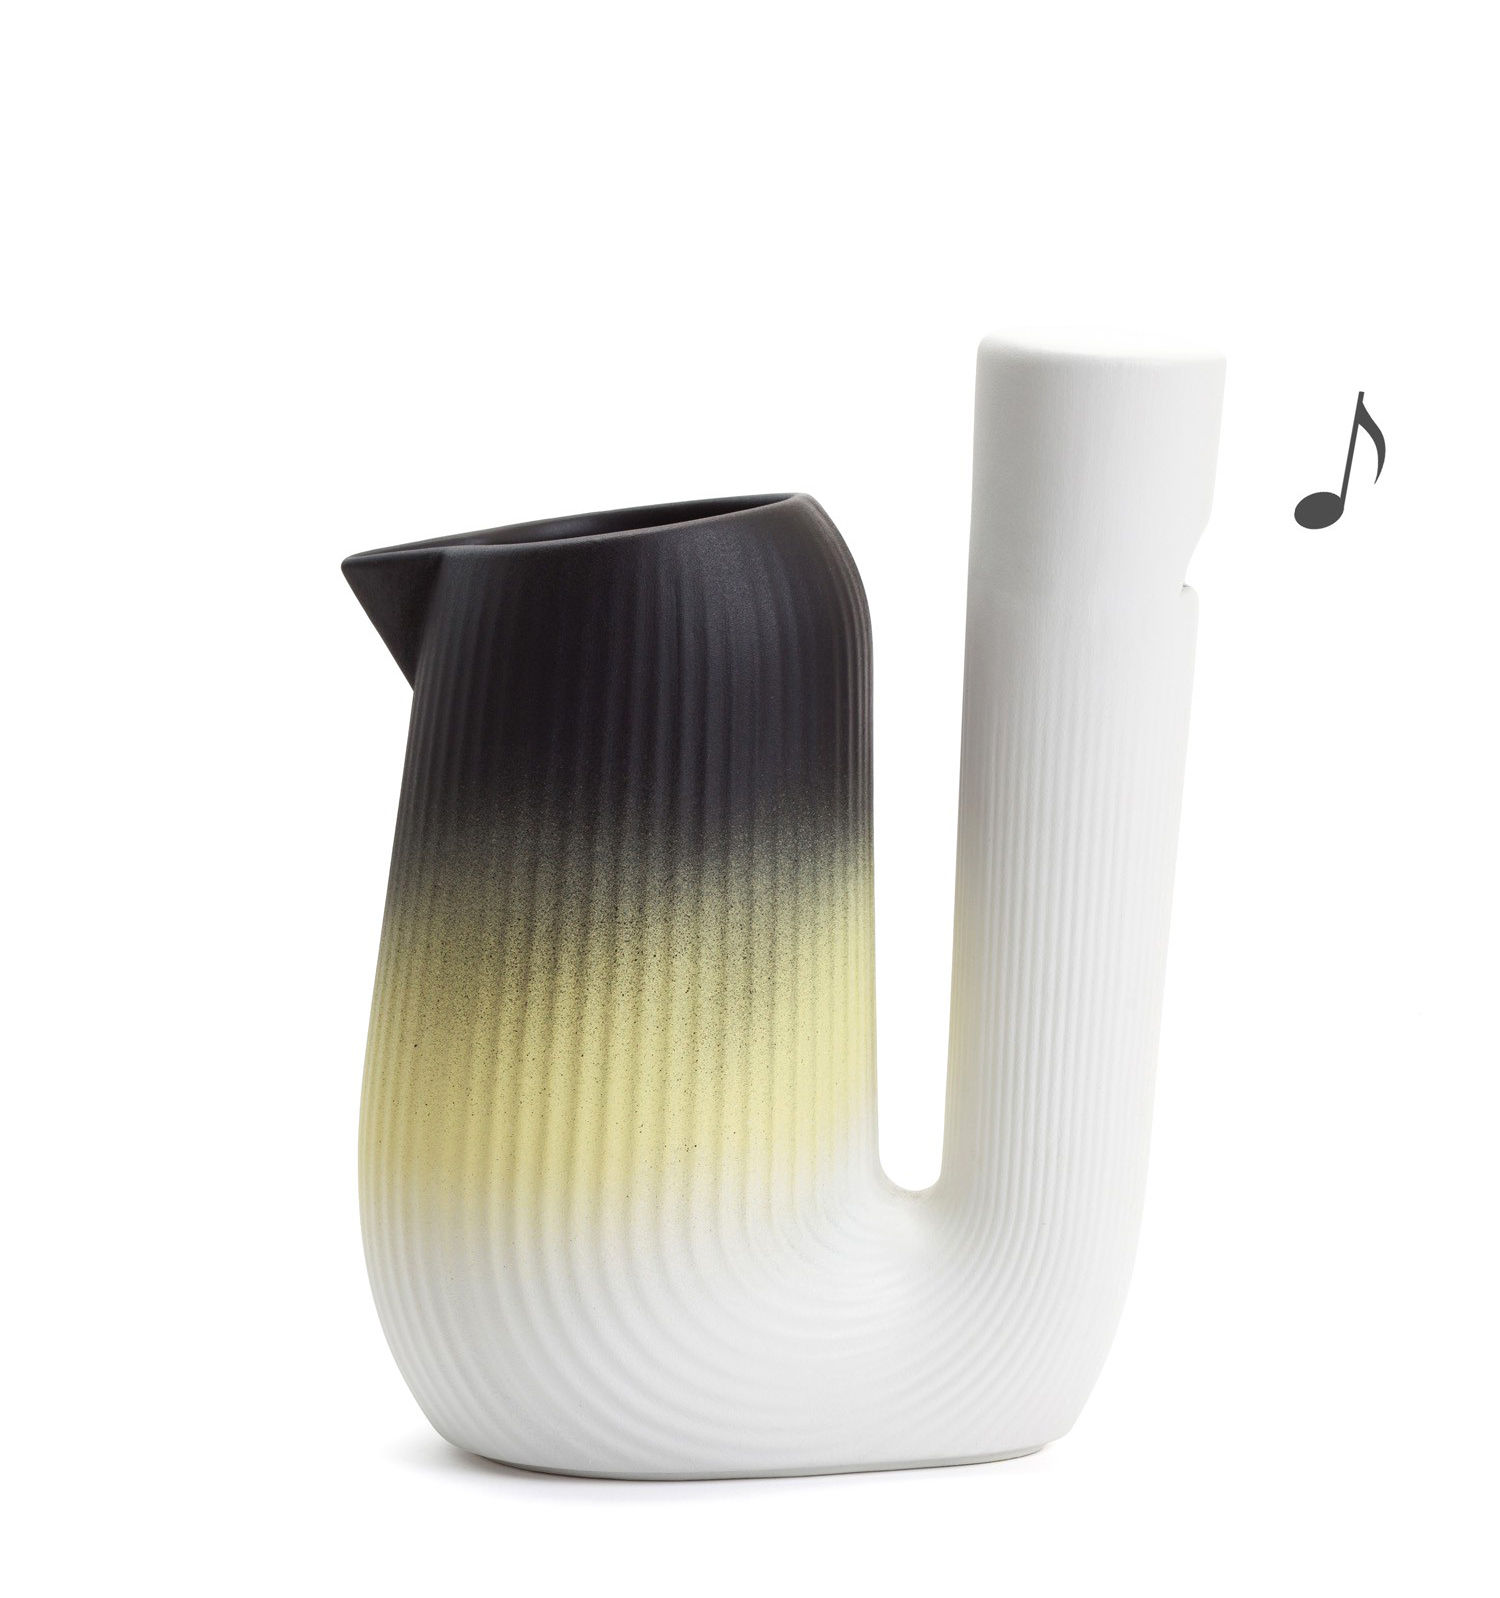 Tableware - Water Carafes & Wine Decanters - Pan Carafe - / Whistler - 1L by Moustache - Yellow & black - Glazed ceramic